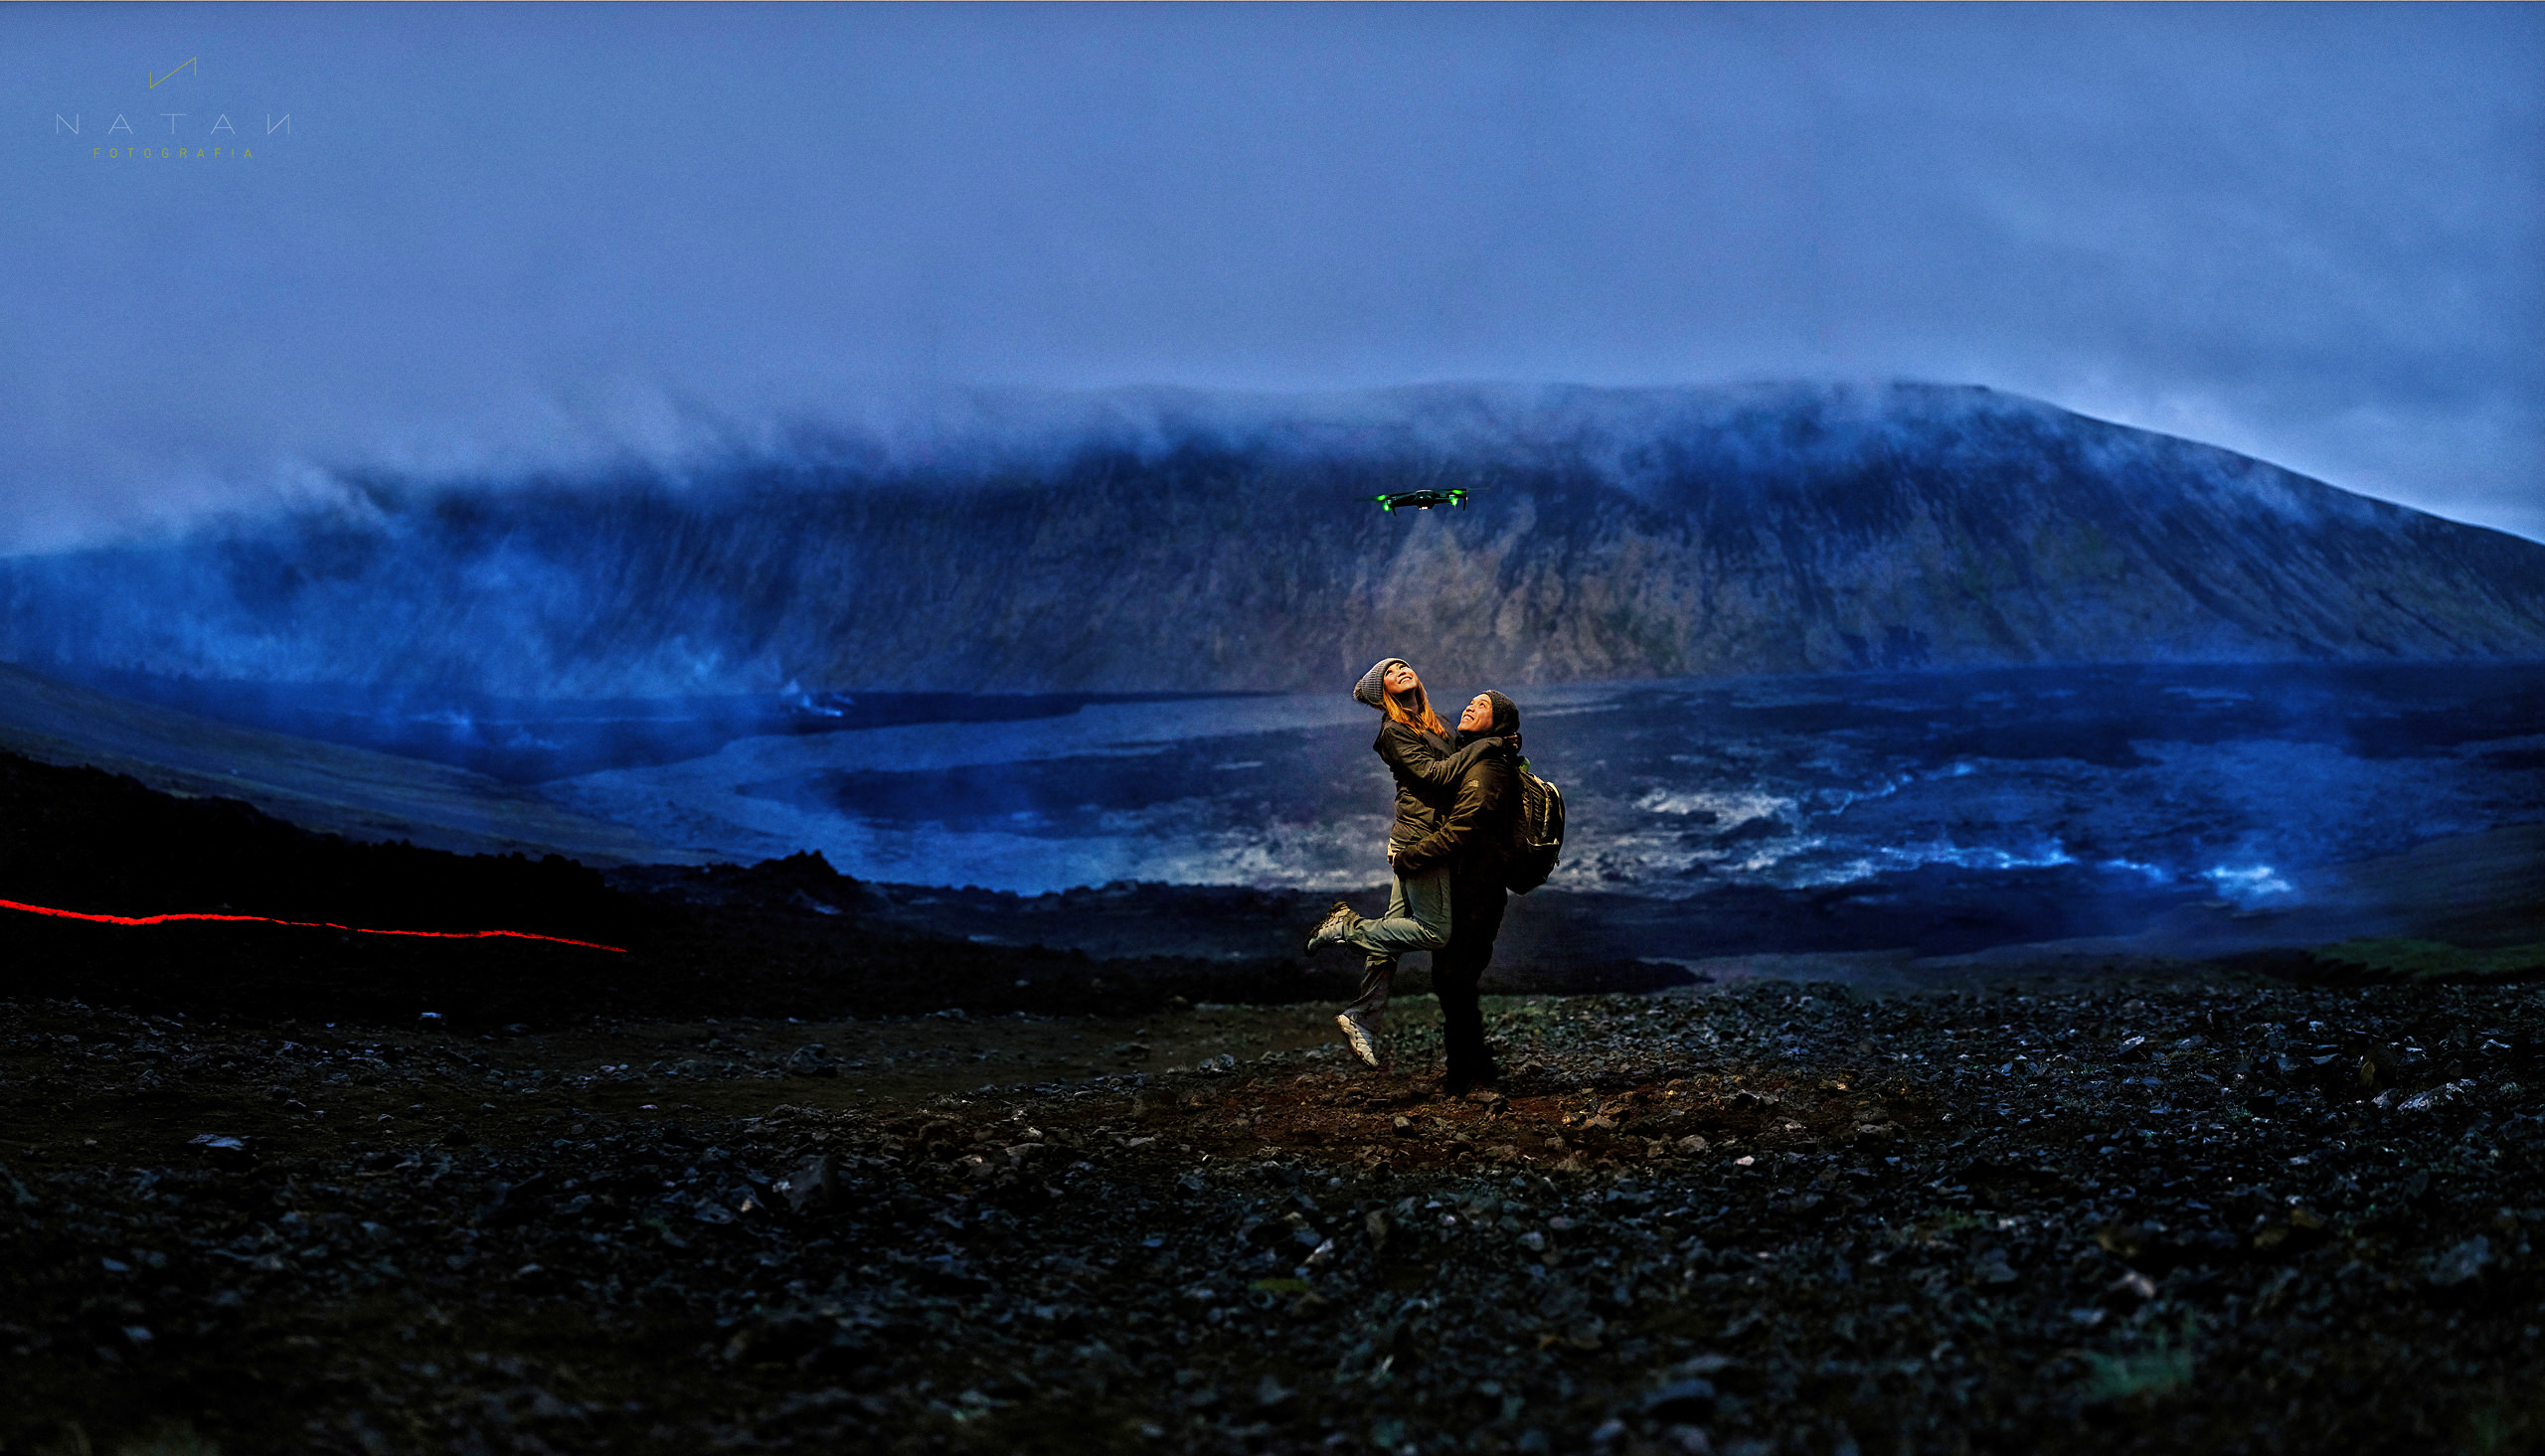 Lava Volcano Iceland Elopement Photography - Funny image